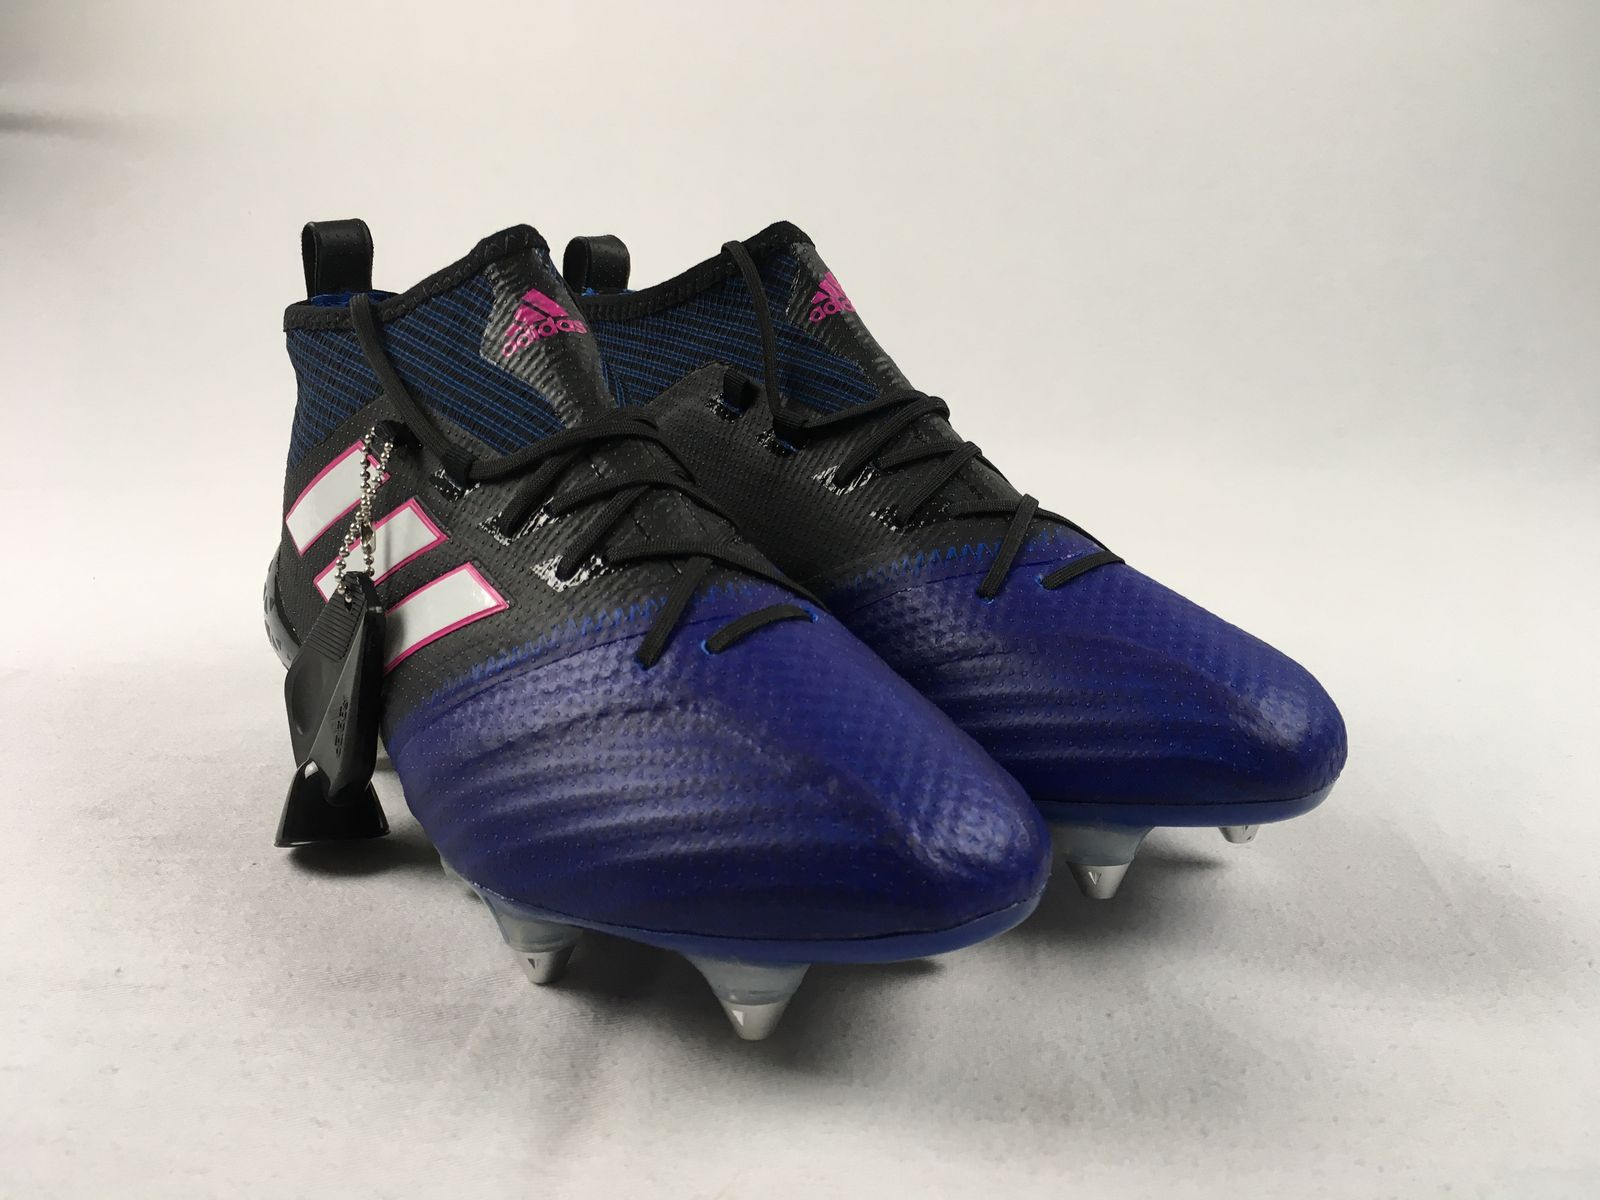 new arrival 19405 f1d37 Details about NEW adidas Ace 17.1 Primeknit SG - BlackBlue Cleats (Mens  Multiple Sizes)